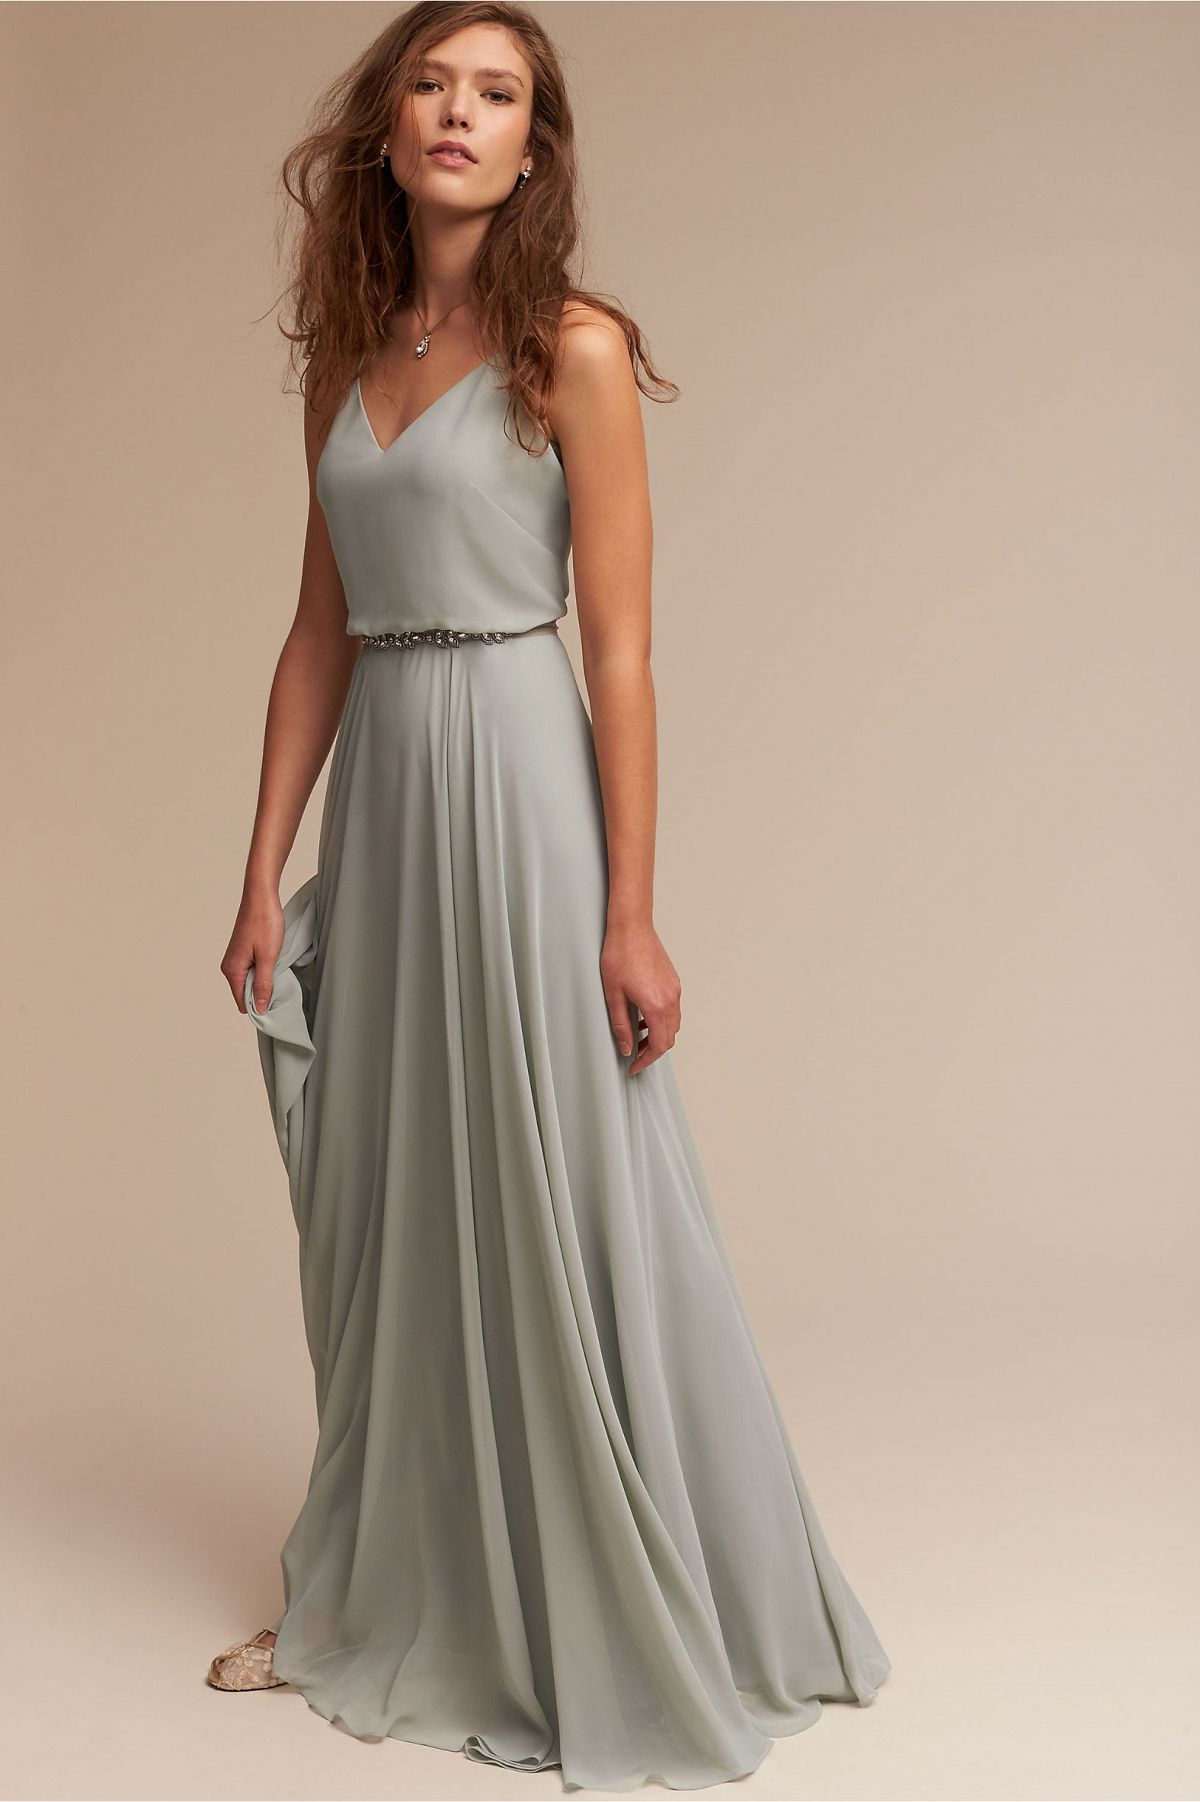 Trauzeugin Kleid Lang 10 Bridesmaid Dresses You Can Wear Again Wedding Sparrow